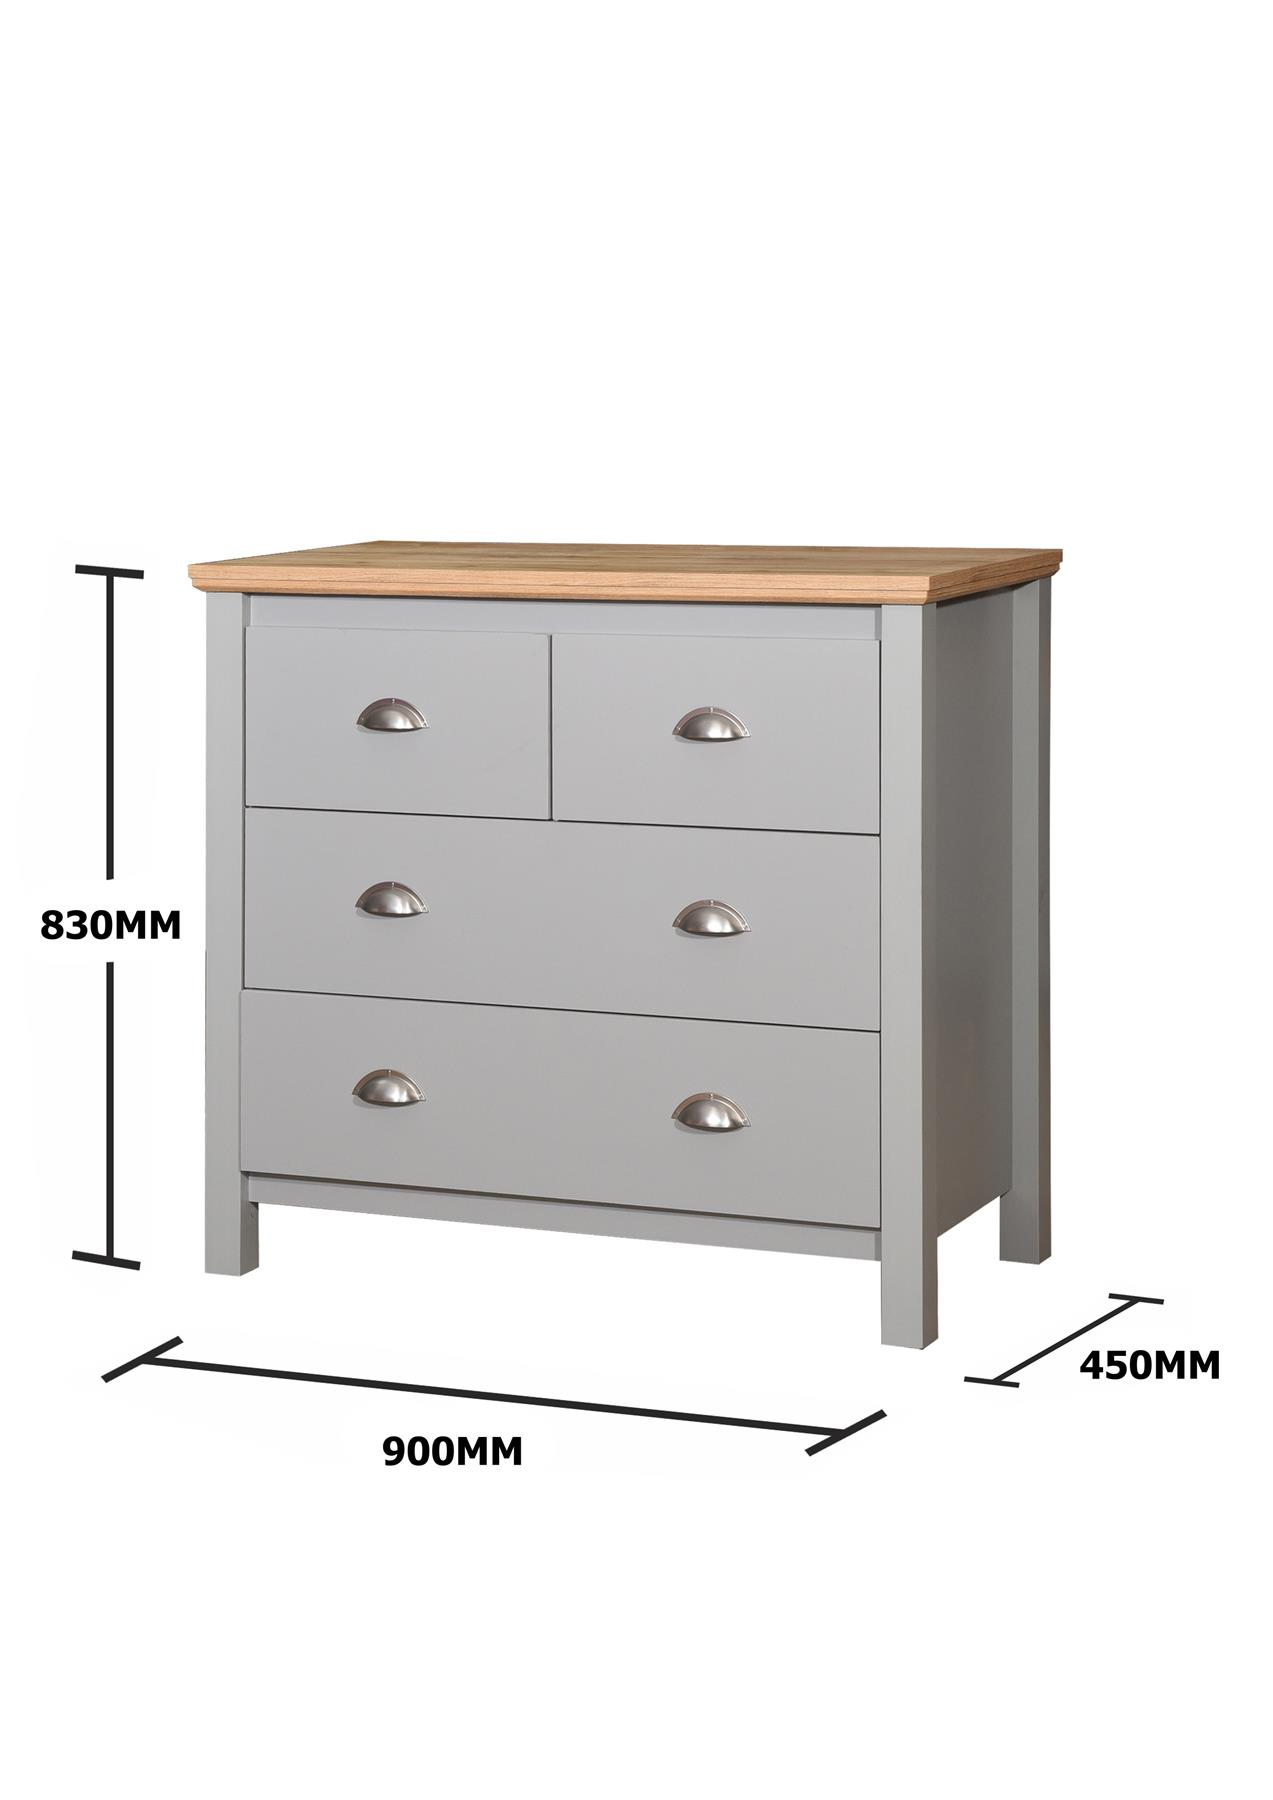 Stool Bedside Table: Eaton Grey Bedroom Furniture Bedside Wardrobe Chest